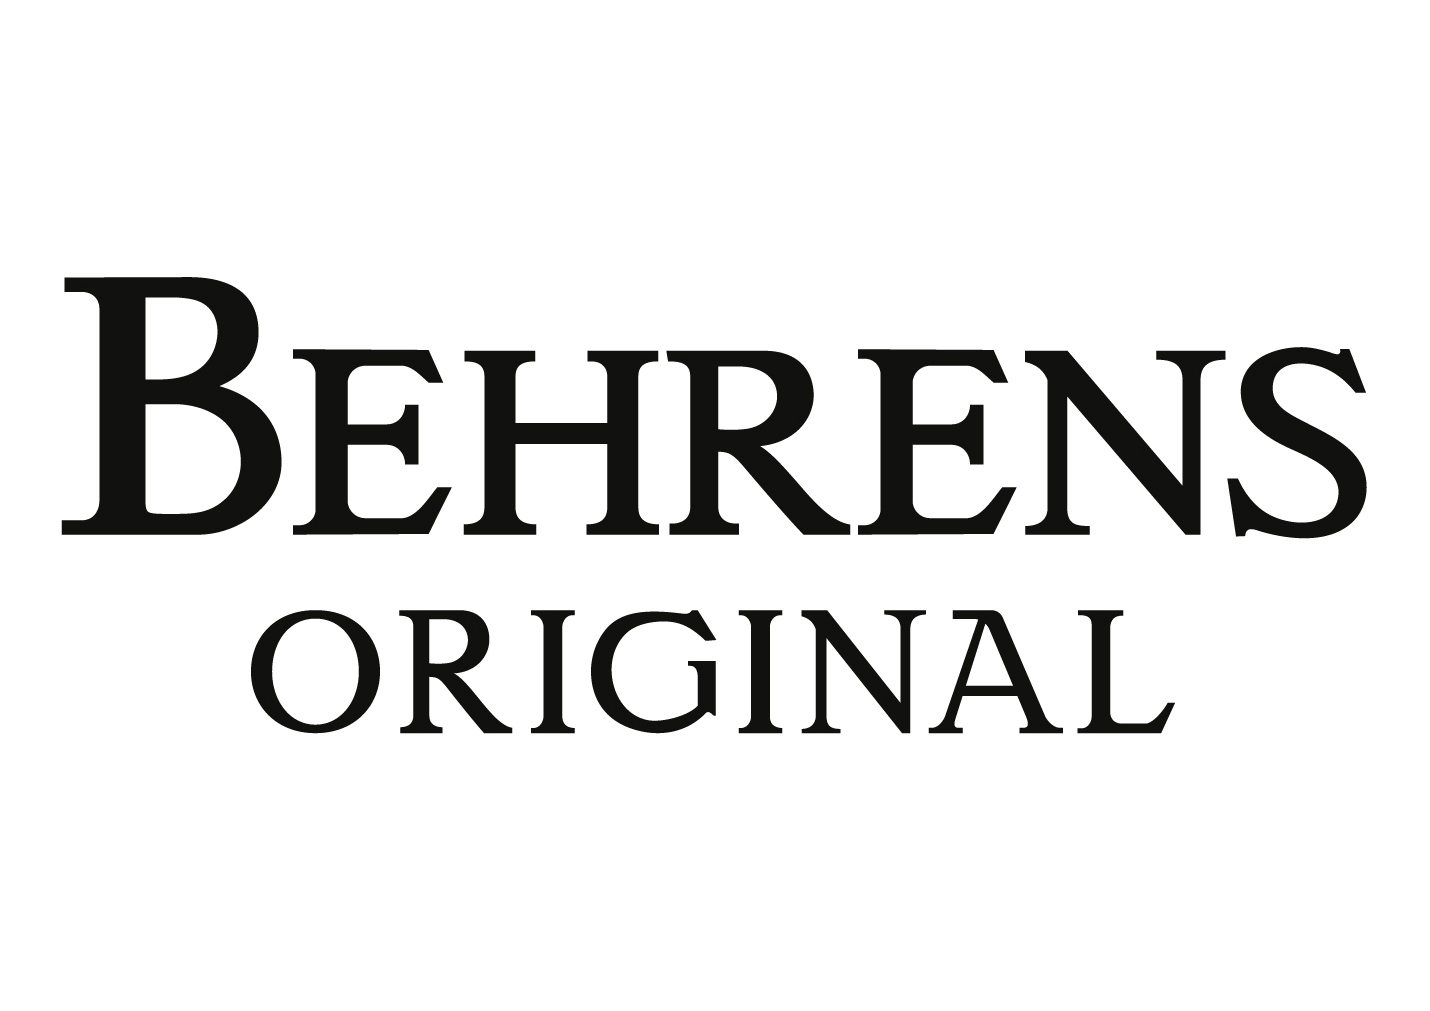 Behrens Original launches a fundraising campaign for the Spaceship